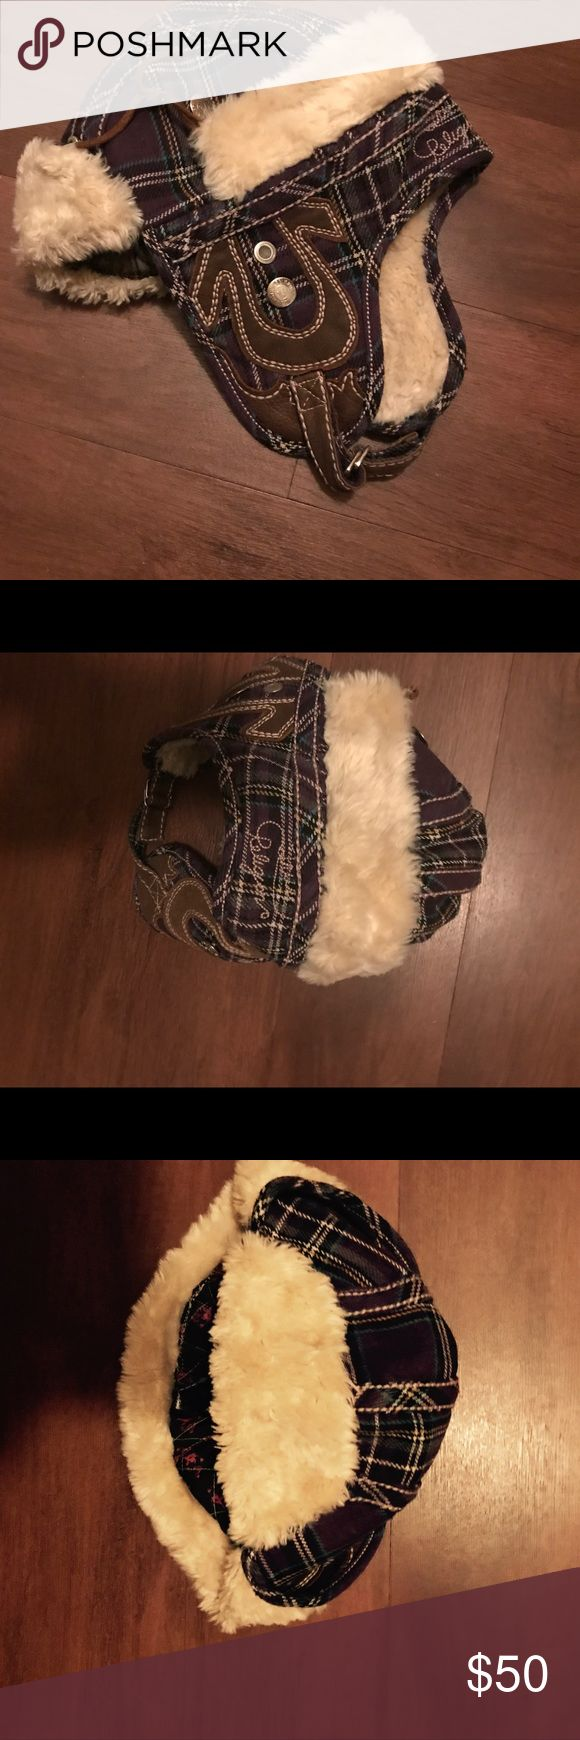 True Religion Trapper Hat wool Purple plaid wool hat with other materials. Very warm worn up or coverer ears from winter wind and cold weather. Excellent made made in CHINA True Religion Accessories Hats